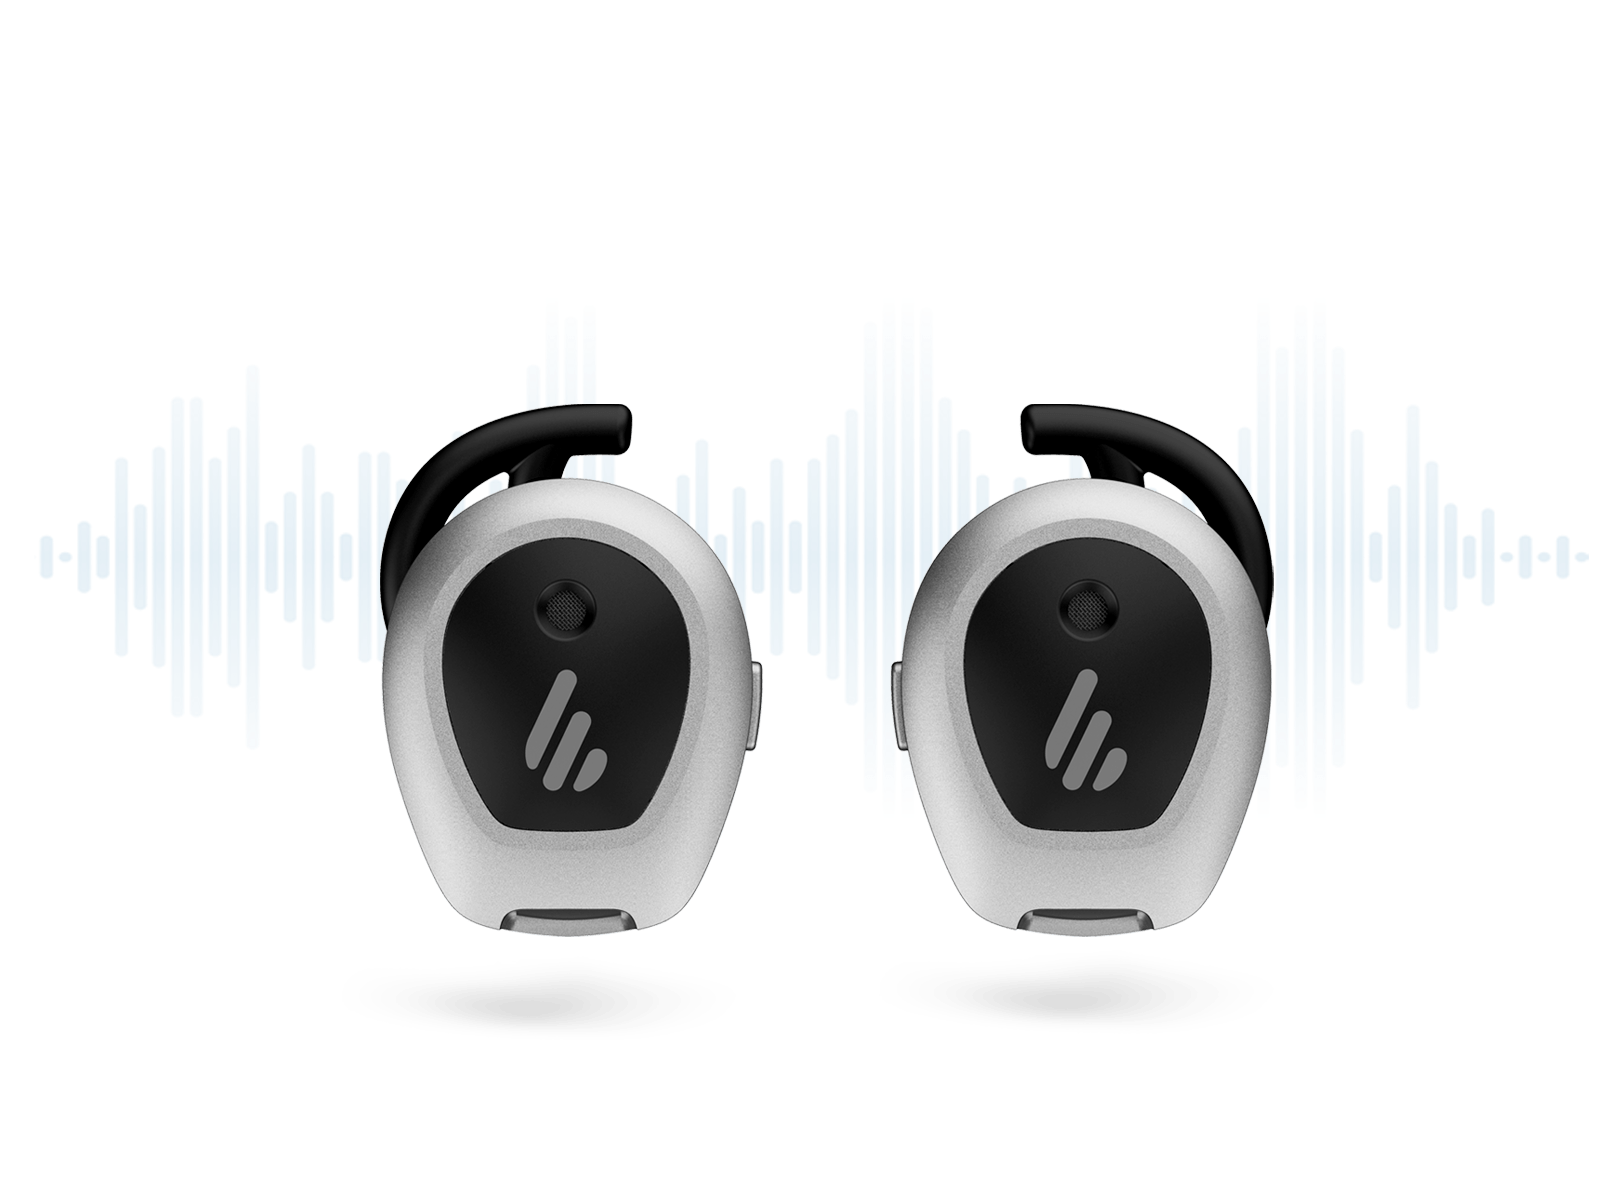 Edifier announces record growth - year on year growth of over 41% with increase in headphone operating income showing growth of 91.27%